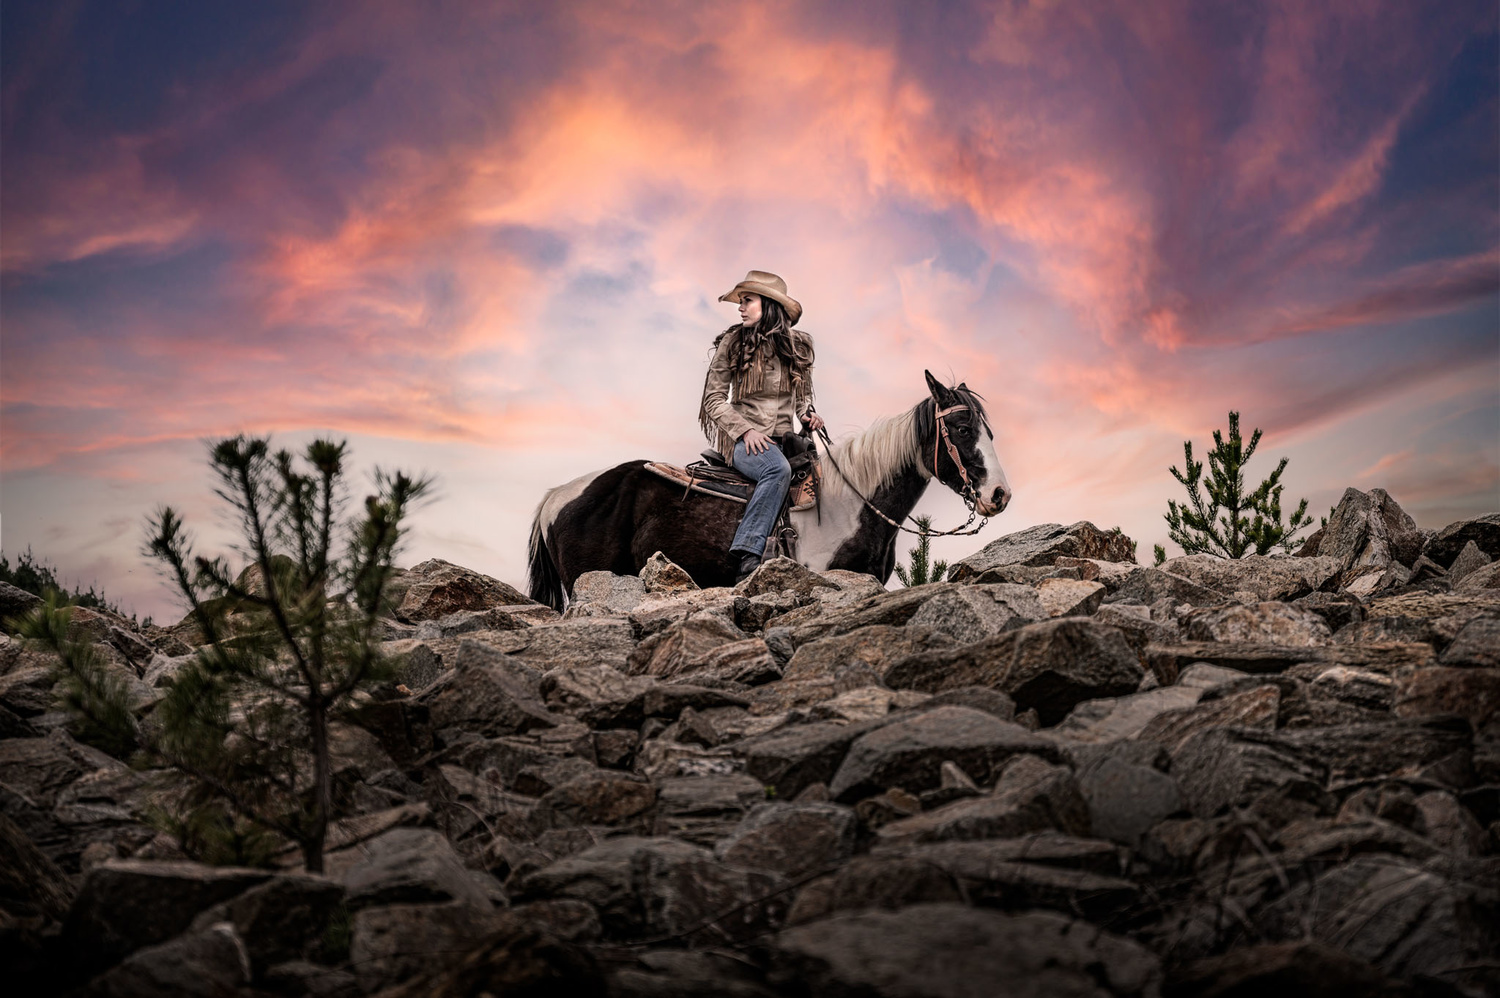 Recreating the Old West by Vladislav Chanev